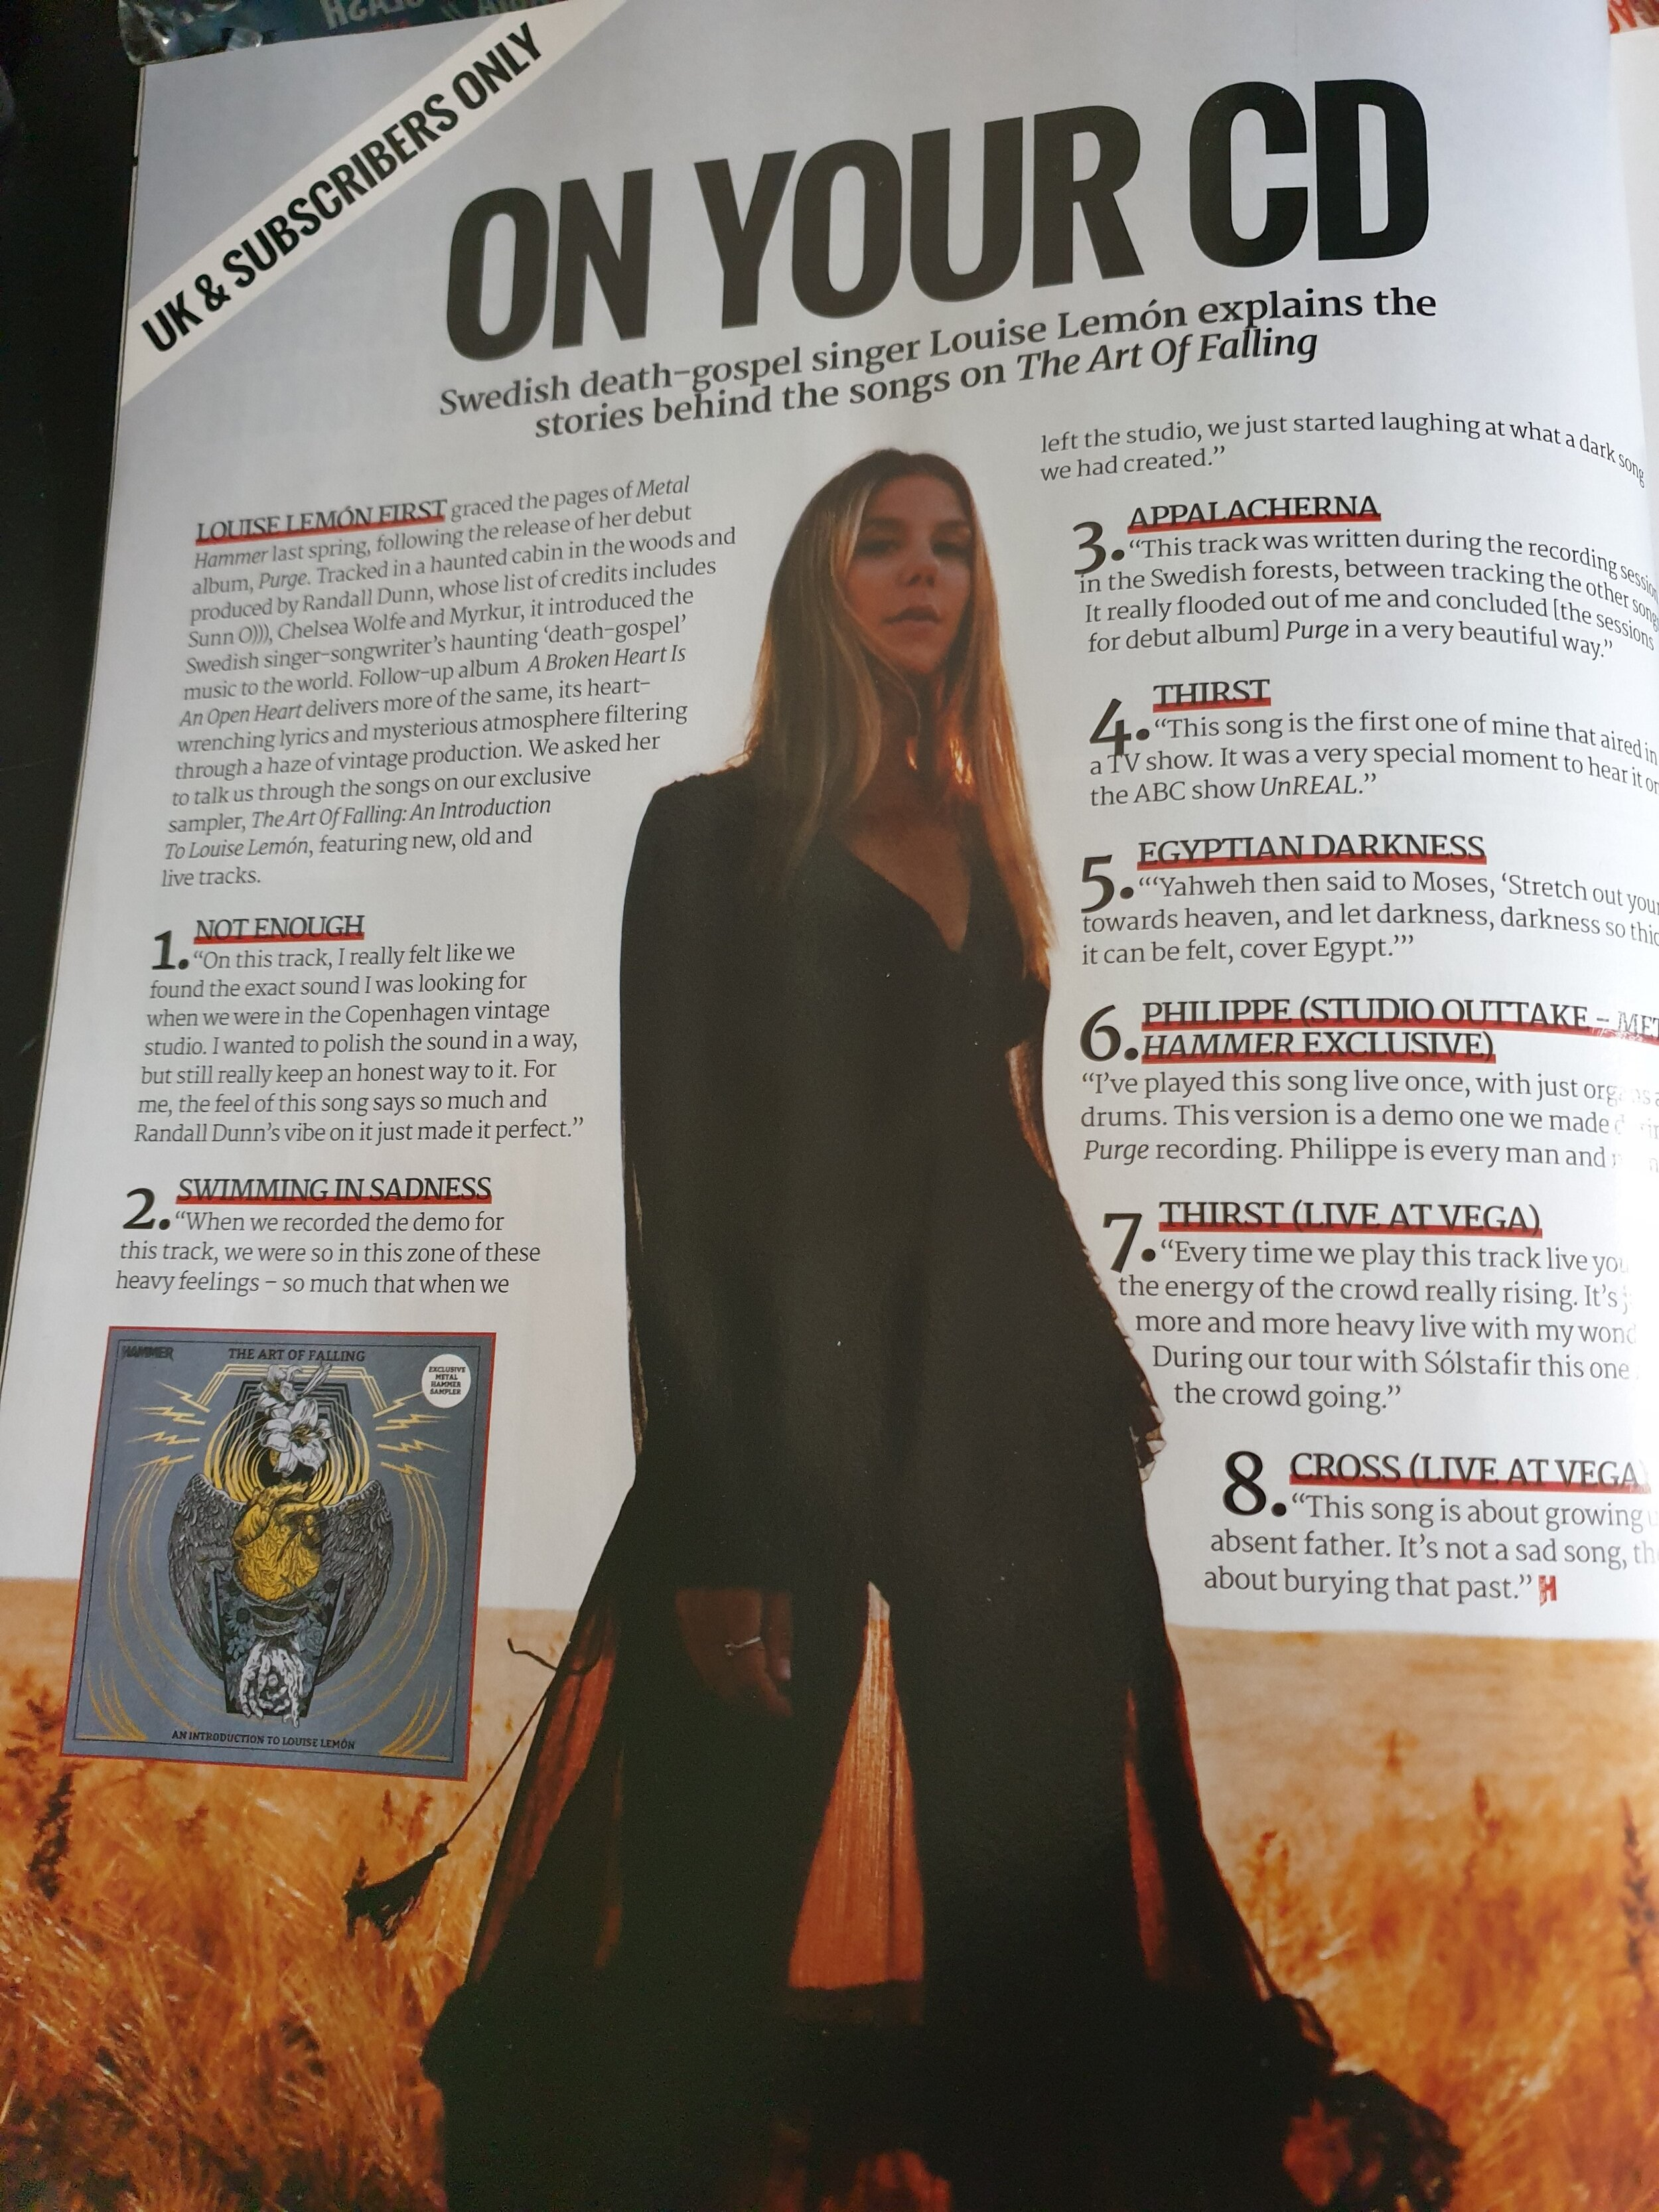 Track by track, CD Included in Magazine, Metal Hammer UK